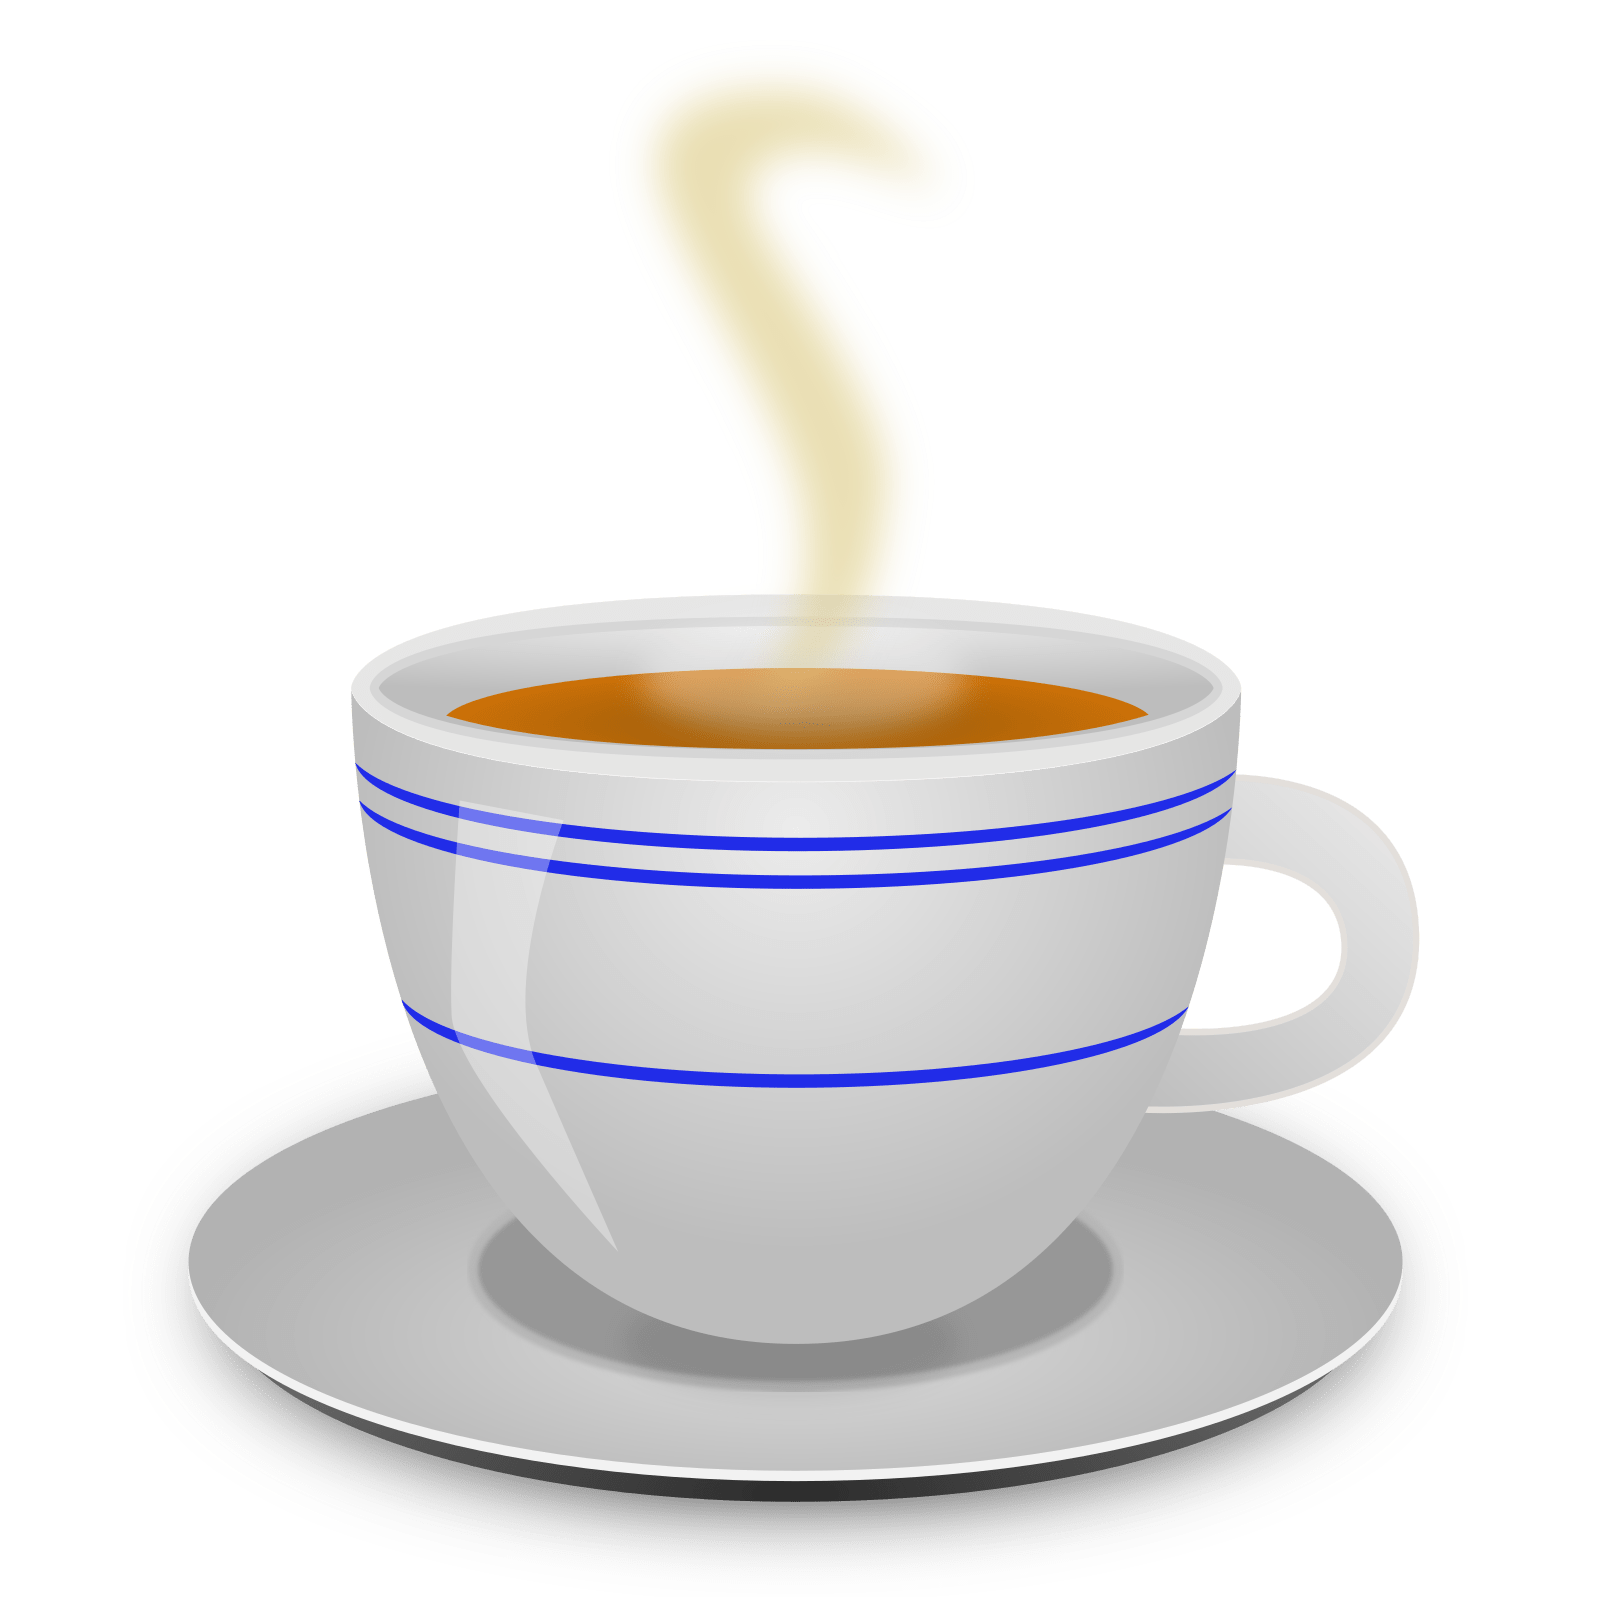 An illustration of a steaming hot cup of coffee on a saucer.